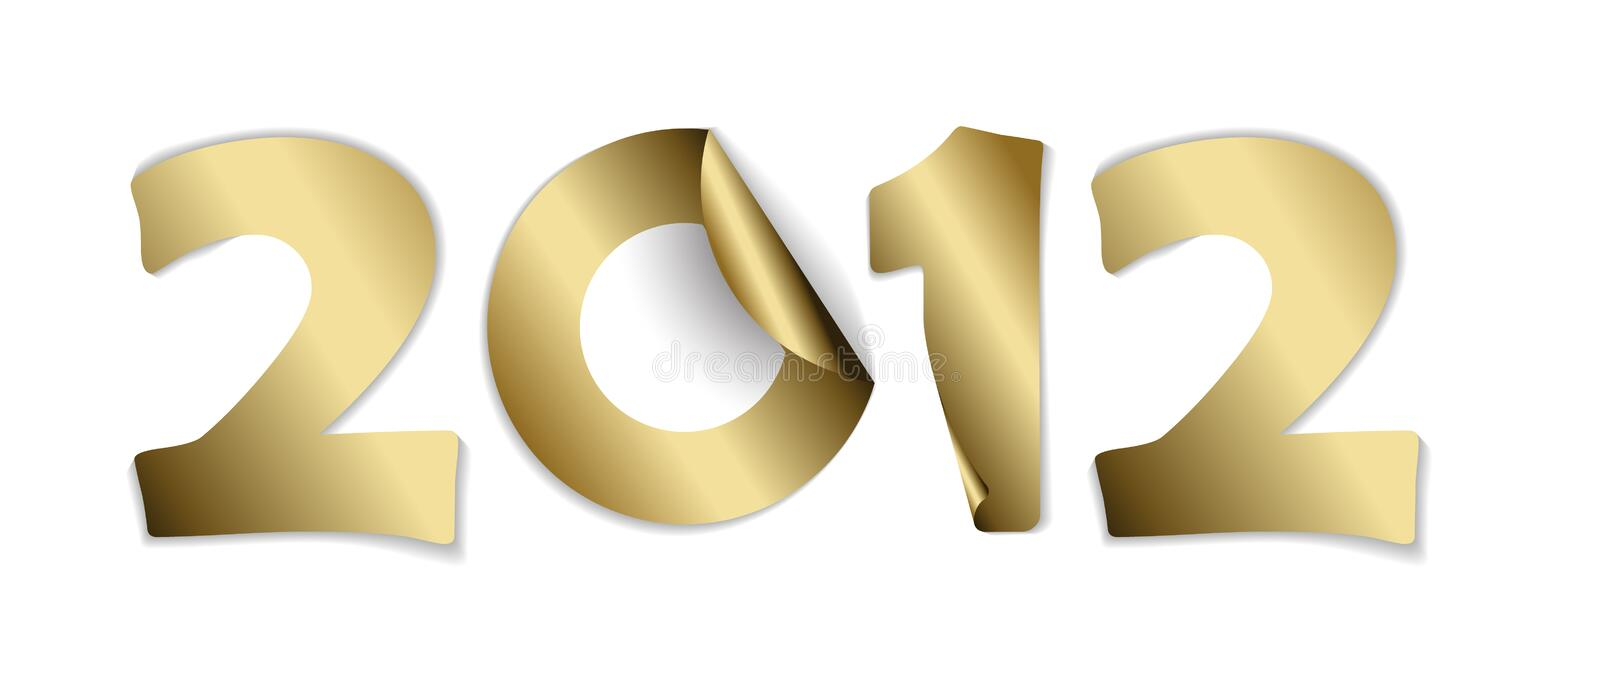 2012 made from  golden stickers